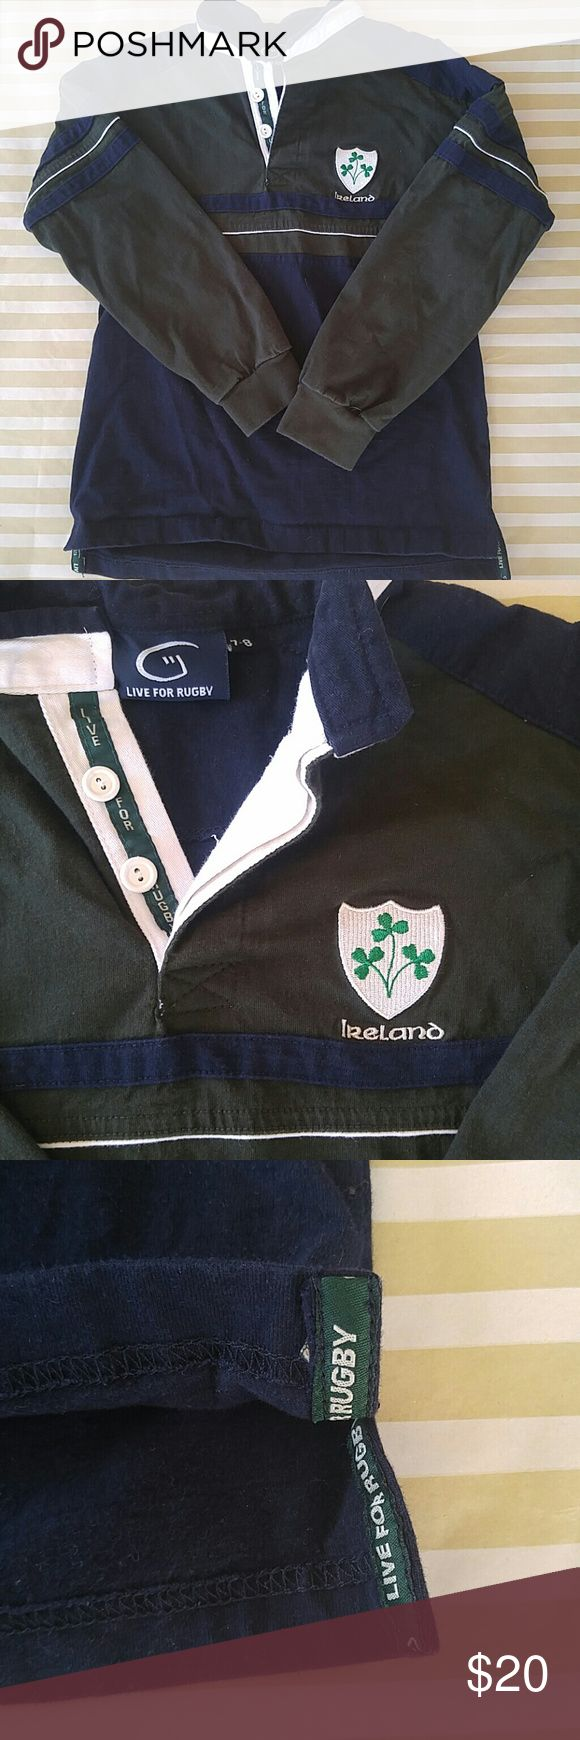 ??Boys Ireland rugby shirt ?? ?? Bought this in Ireland for my son! It's all in the details -embroidered Ireland and shamrock shield, live for rugby sewn into the v on the collar and on the inside hem. Size 7/8. Get it for your little leprechaun in time for St Patrick's day! Worn a few times. Shirts & Tops Polos